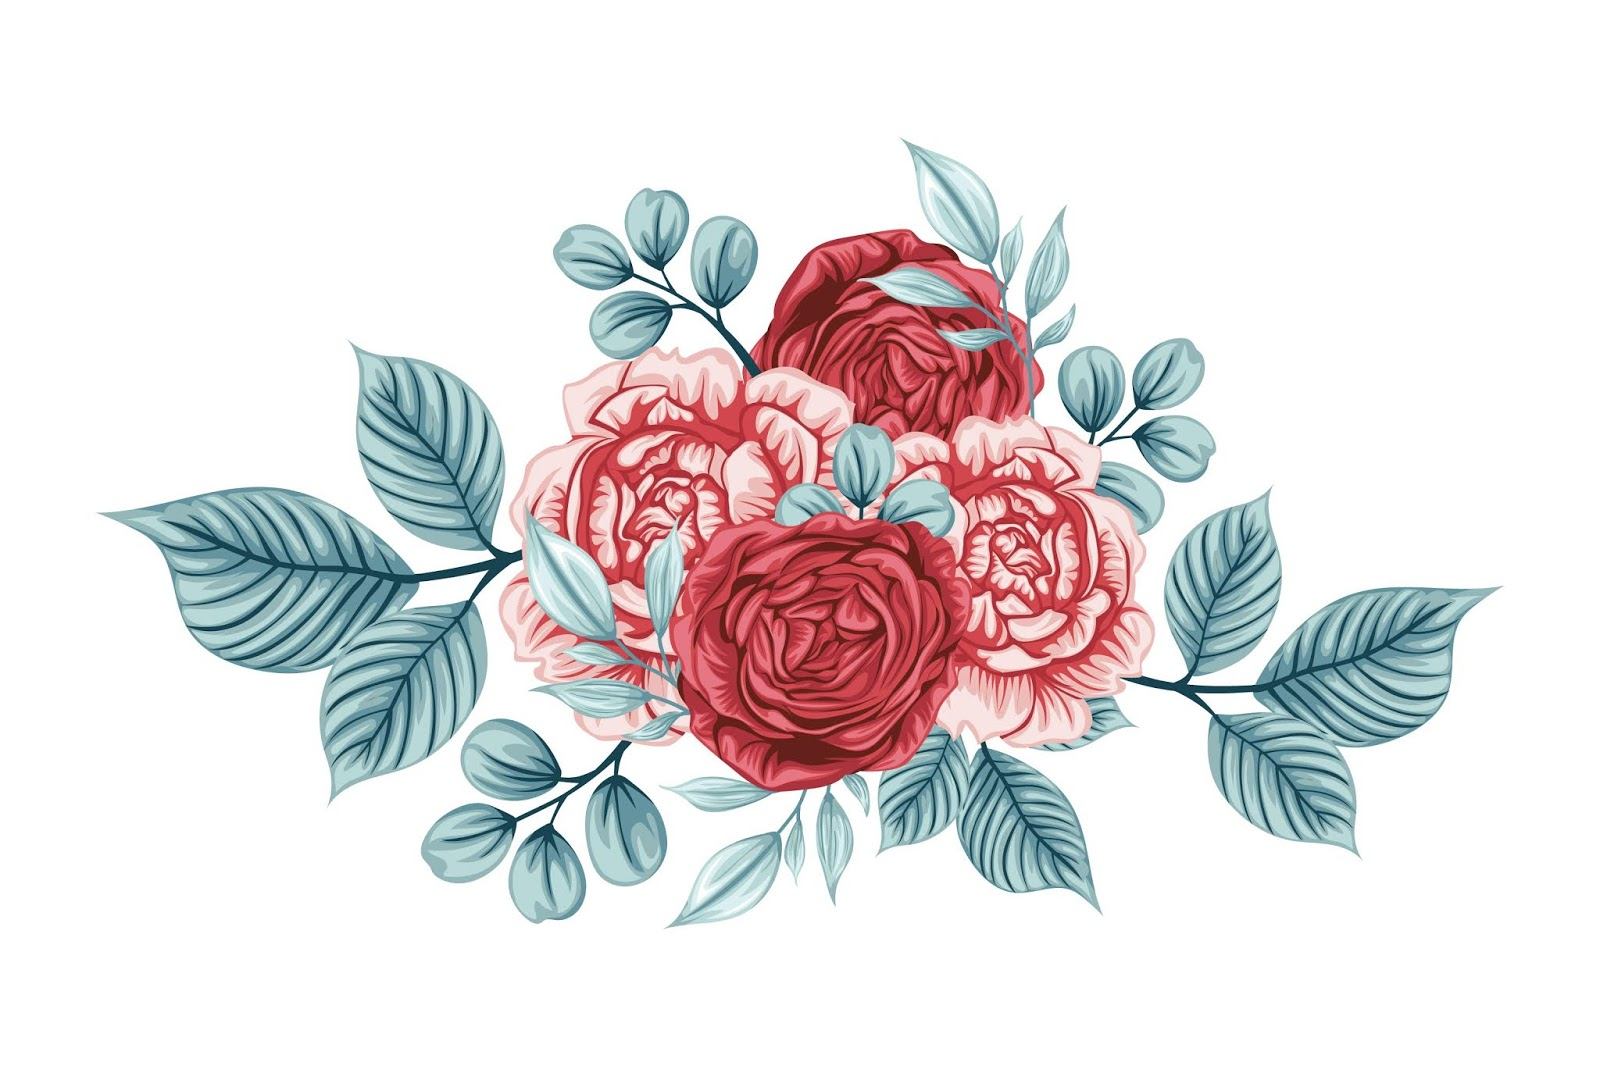 Beautiful Bouquet Rose Flowers Free Download Vector CDR, AI, EPS and PNG Formats